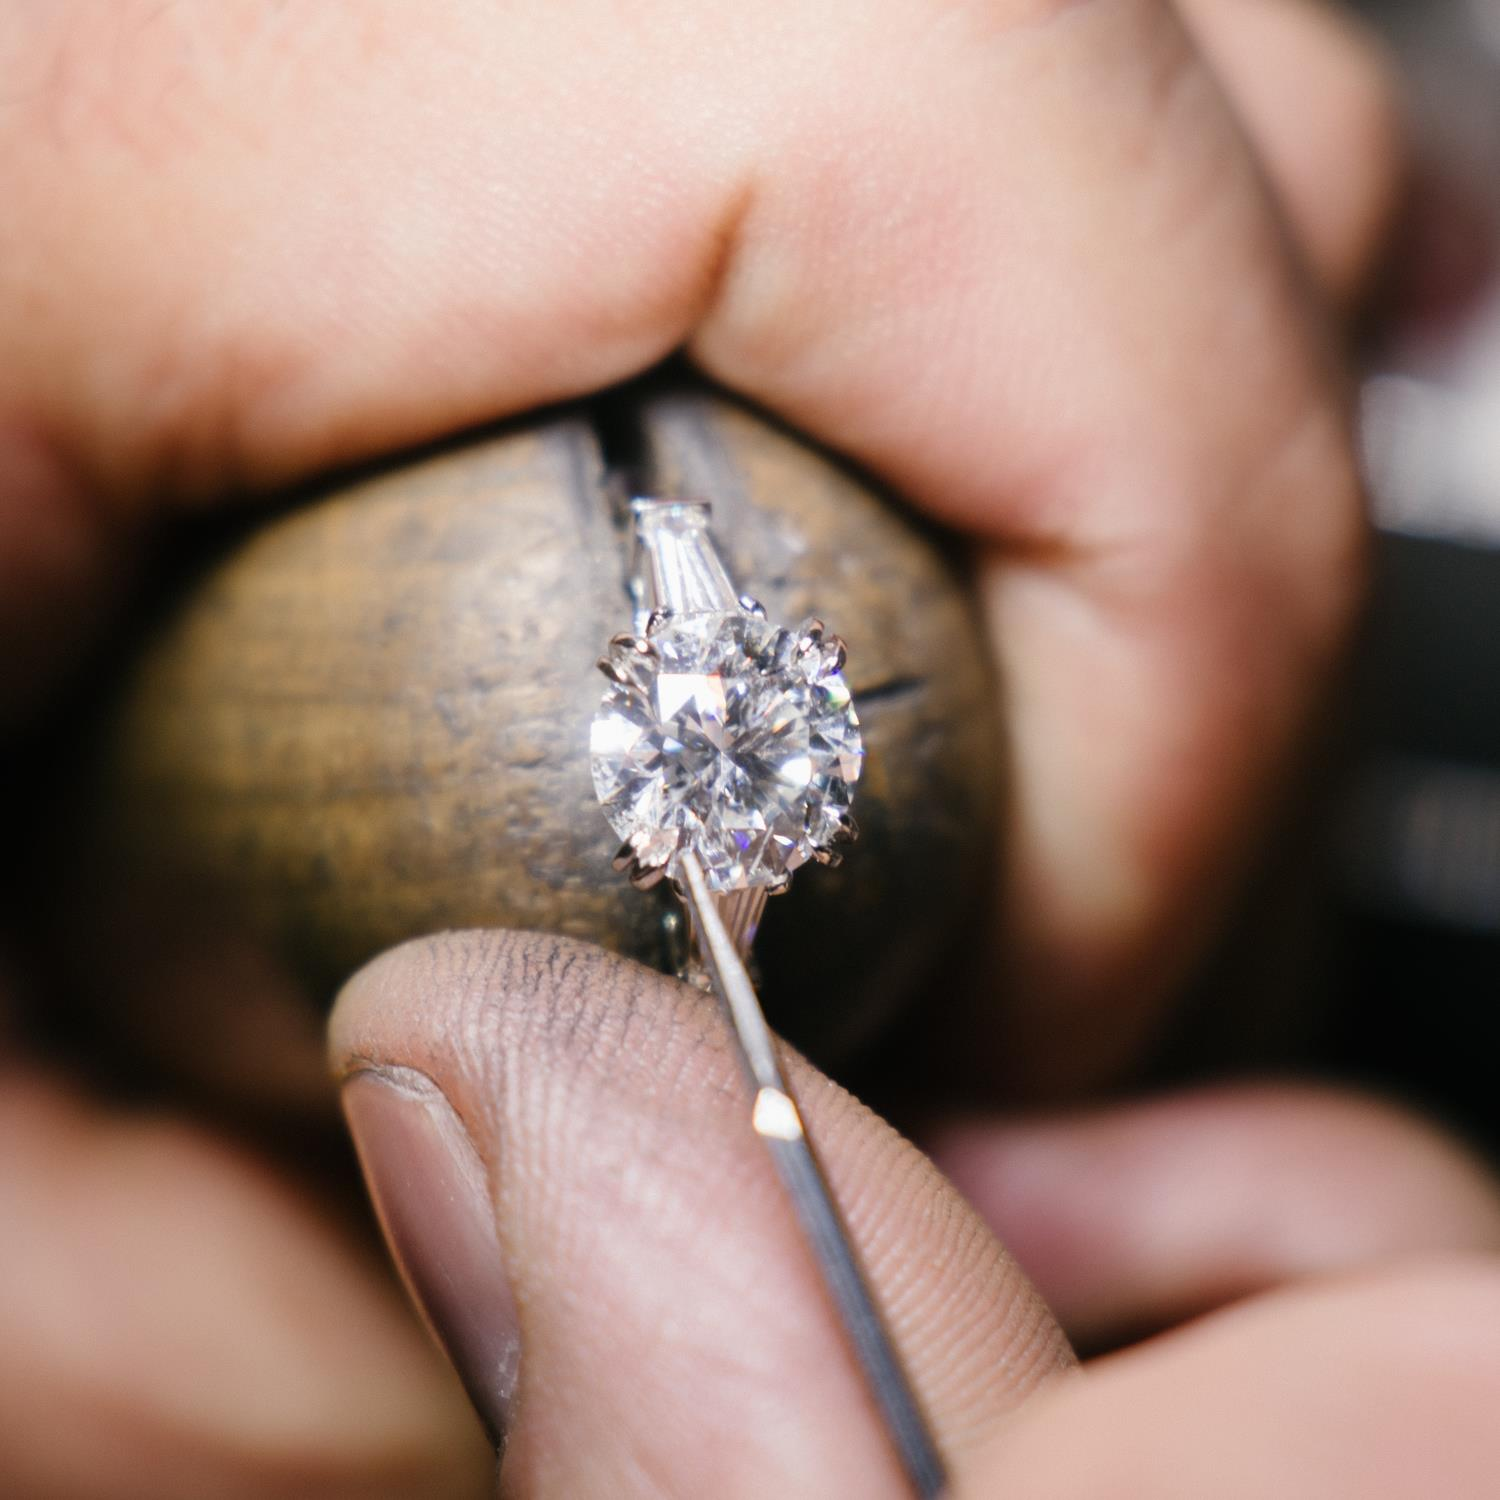 The stones are then set in the platinum, and the ring finally polished.